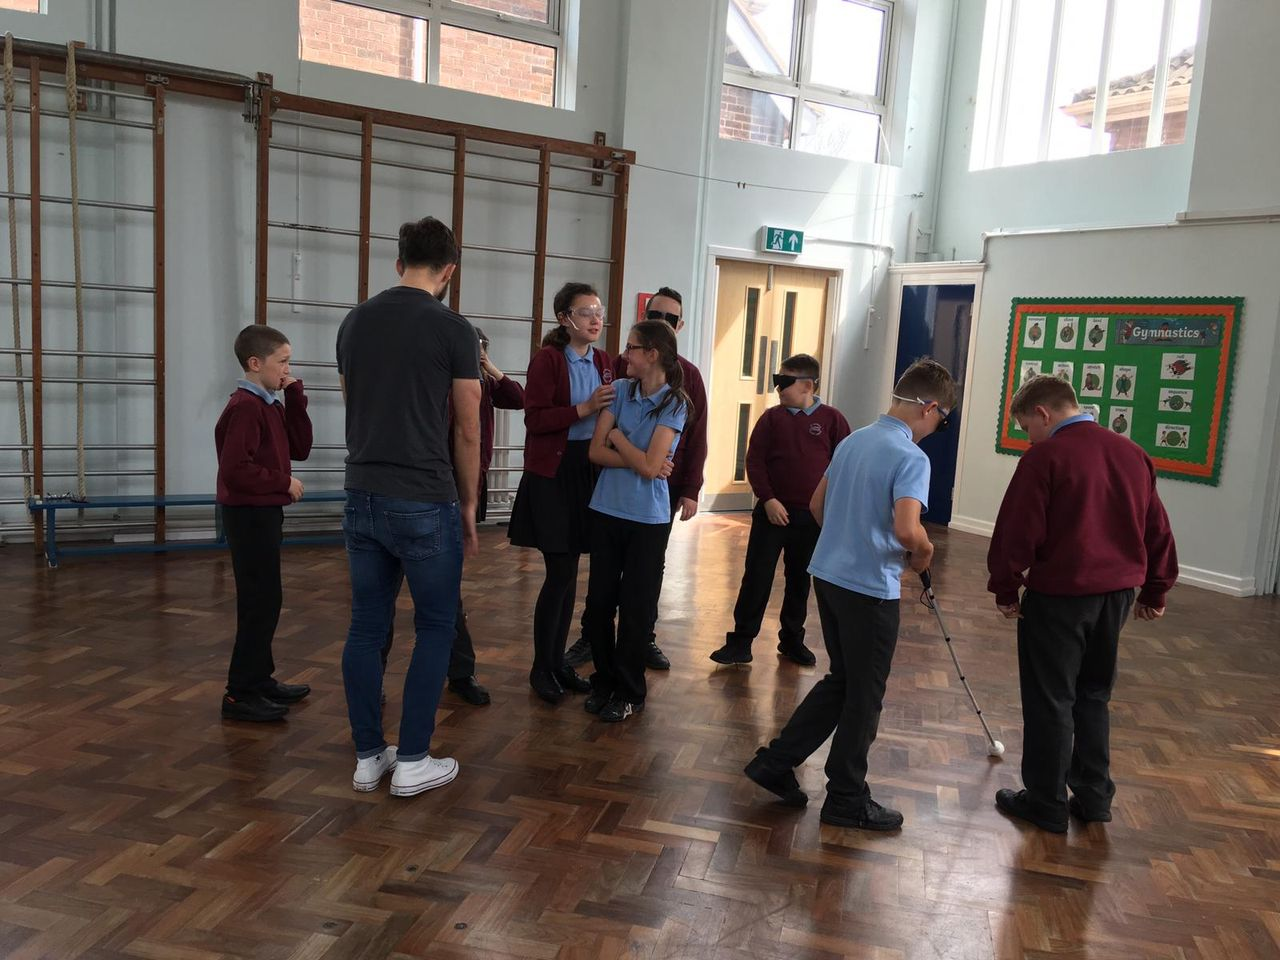 Chris with a group of young school pupils in a school sports hall.